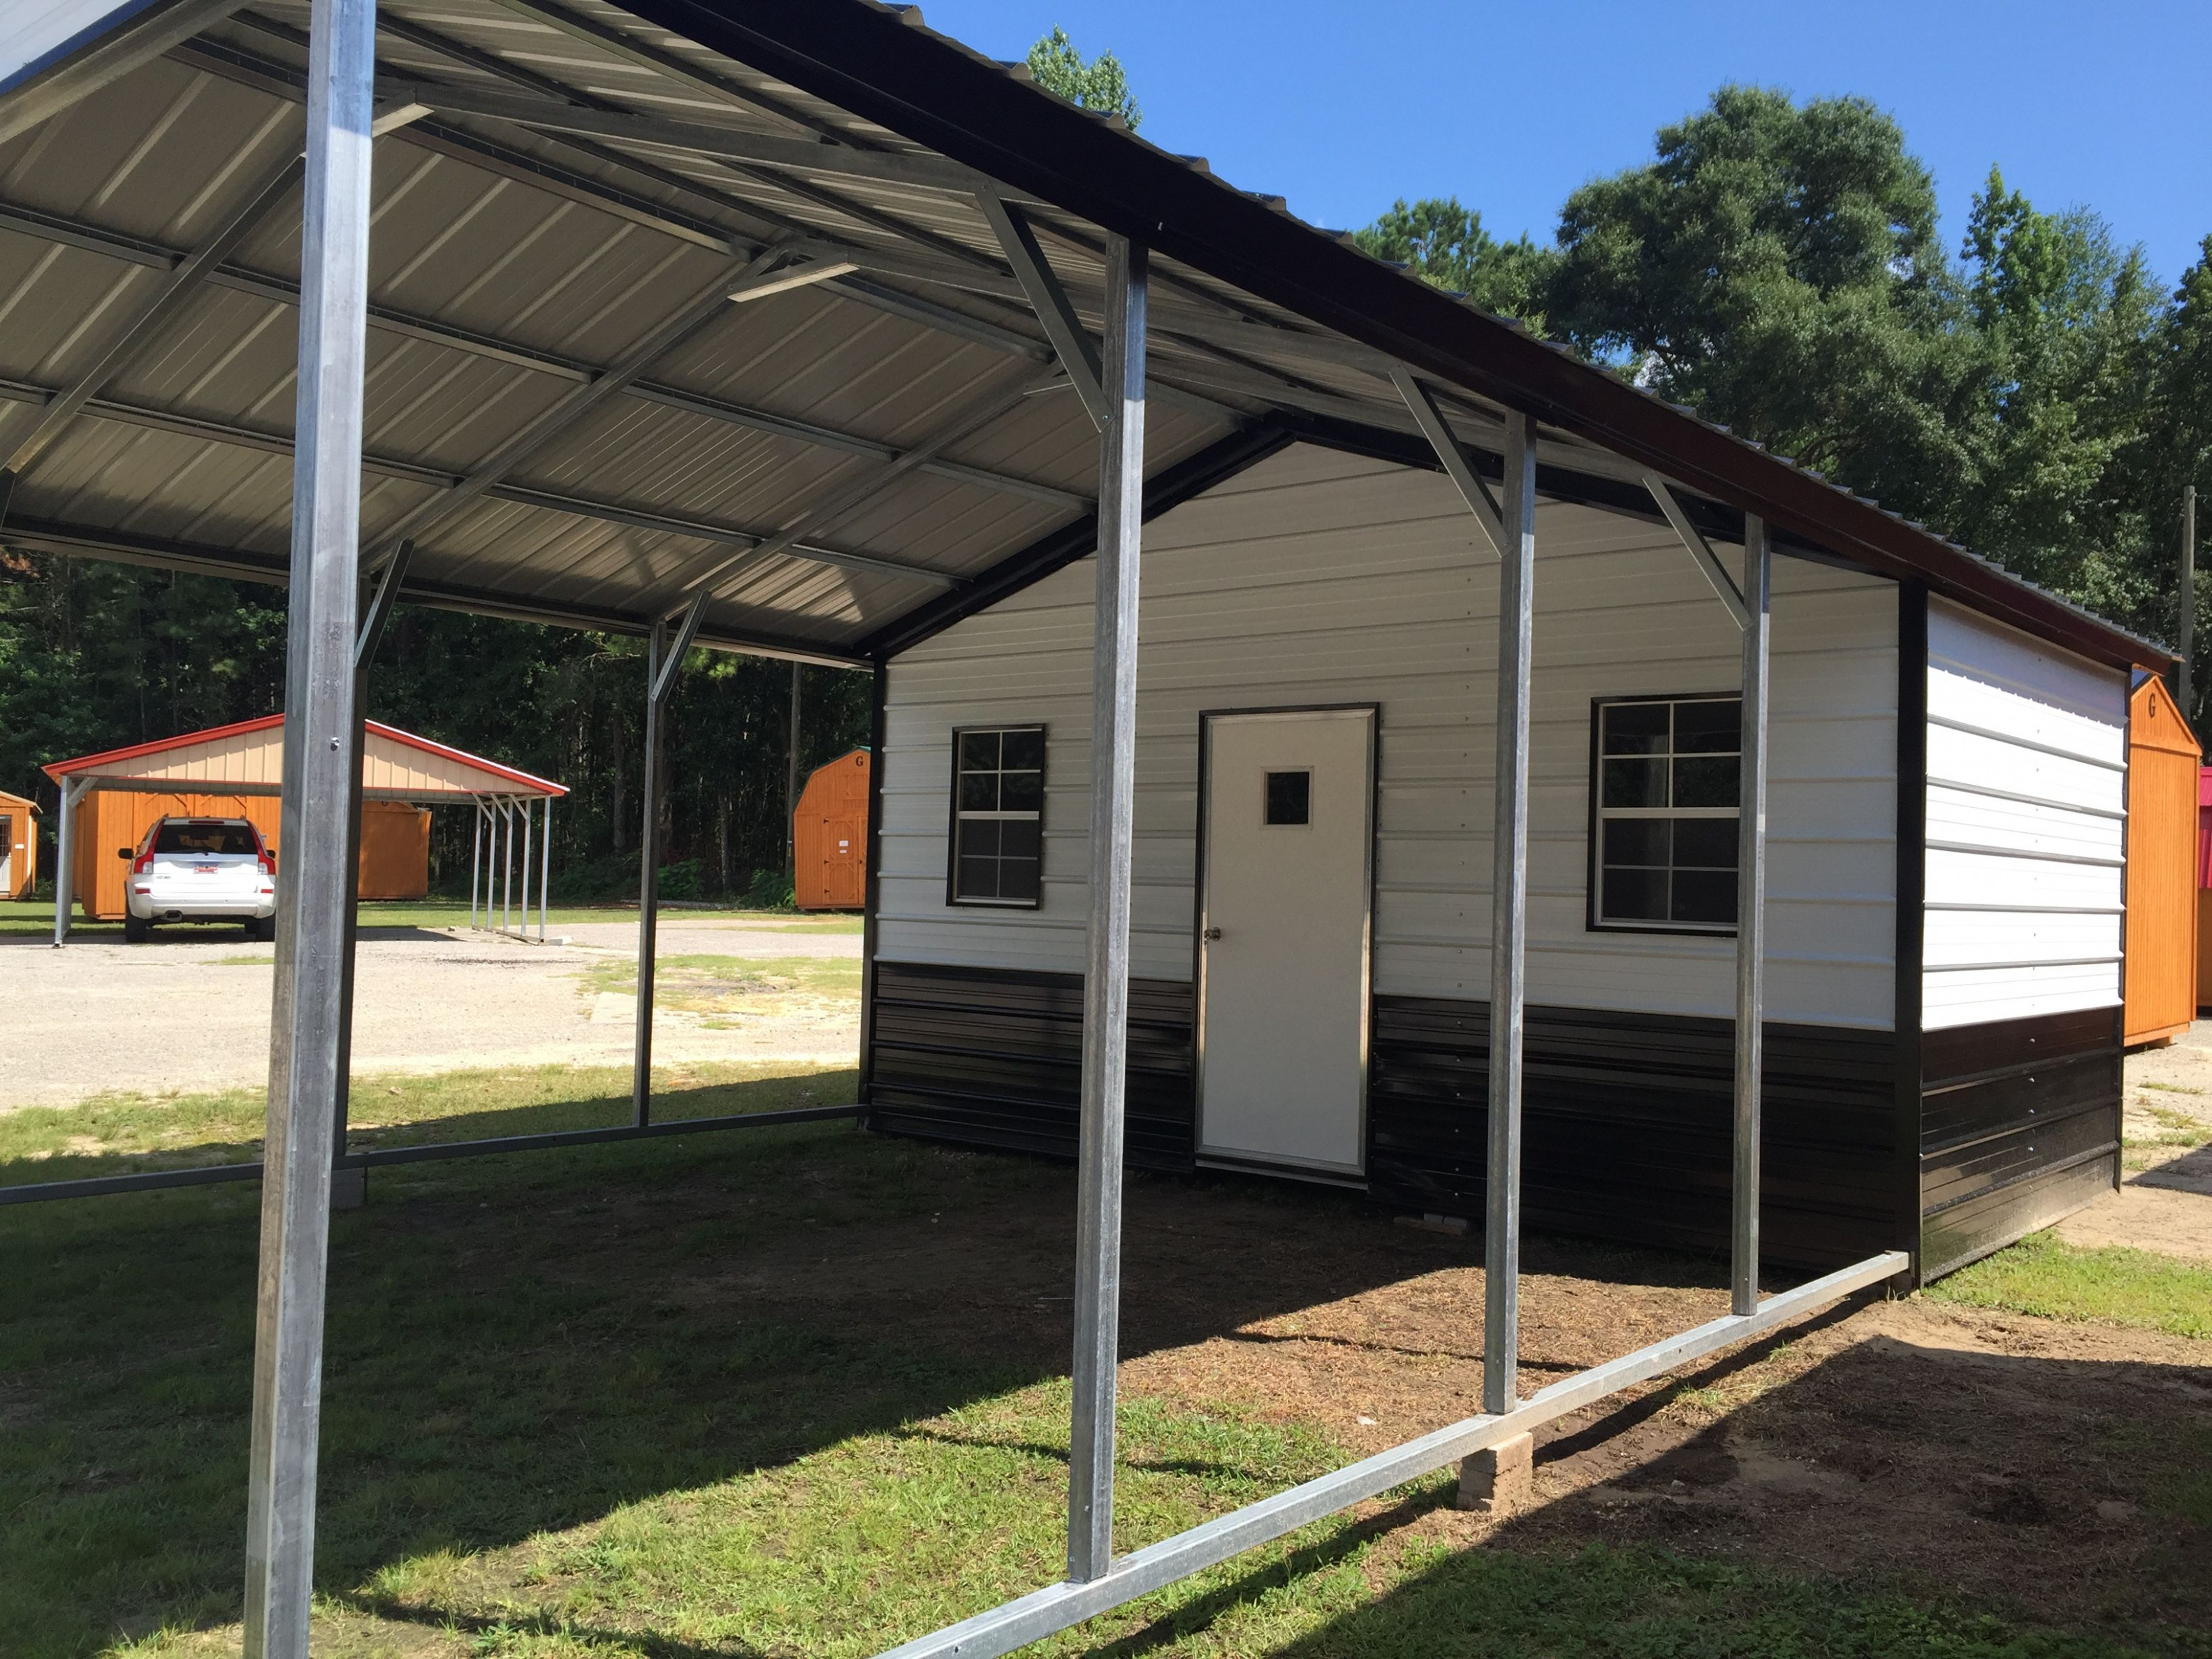 11x11 Carport And Storage Combo! Visit Our Dealership For ..